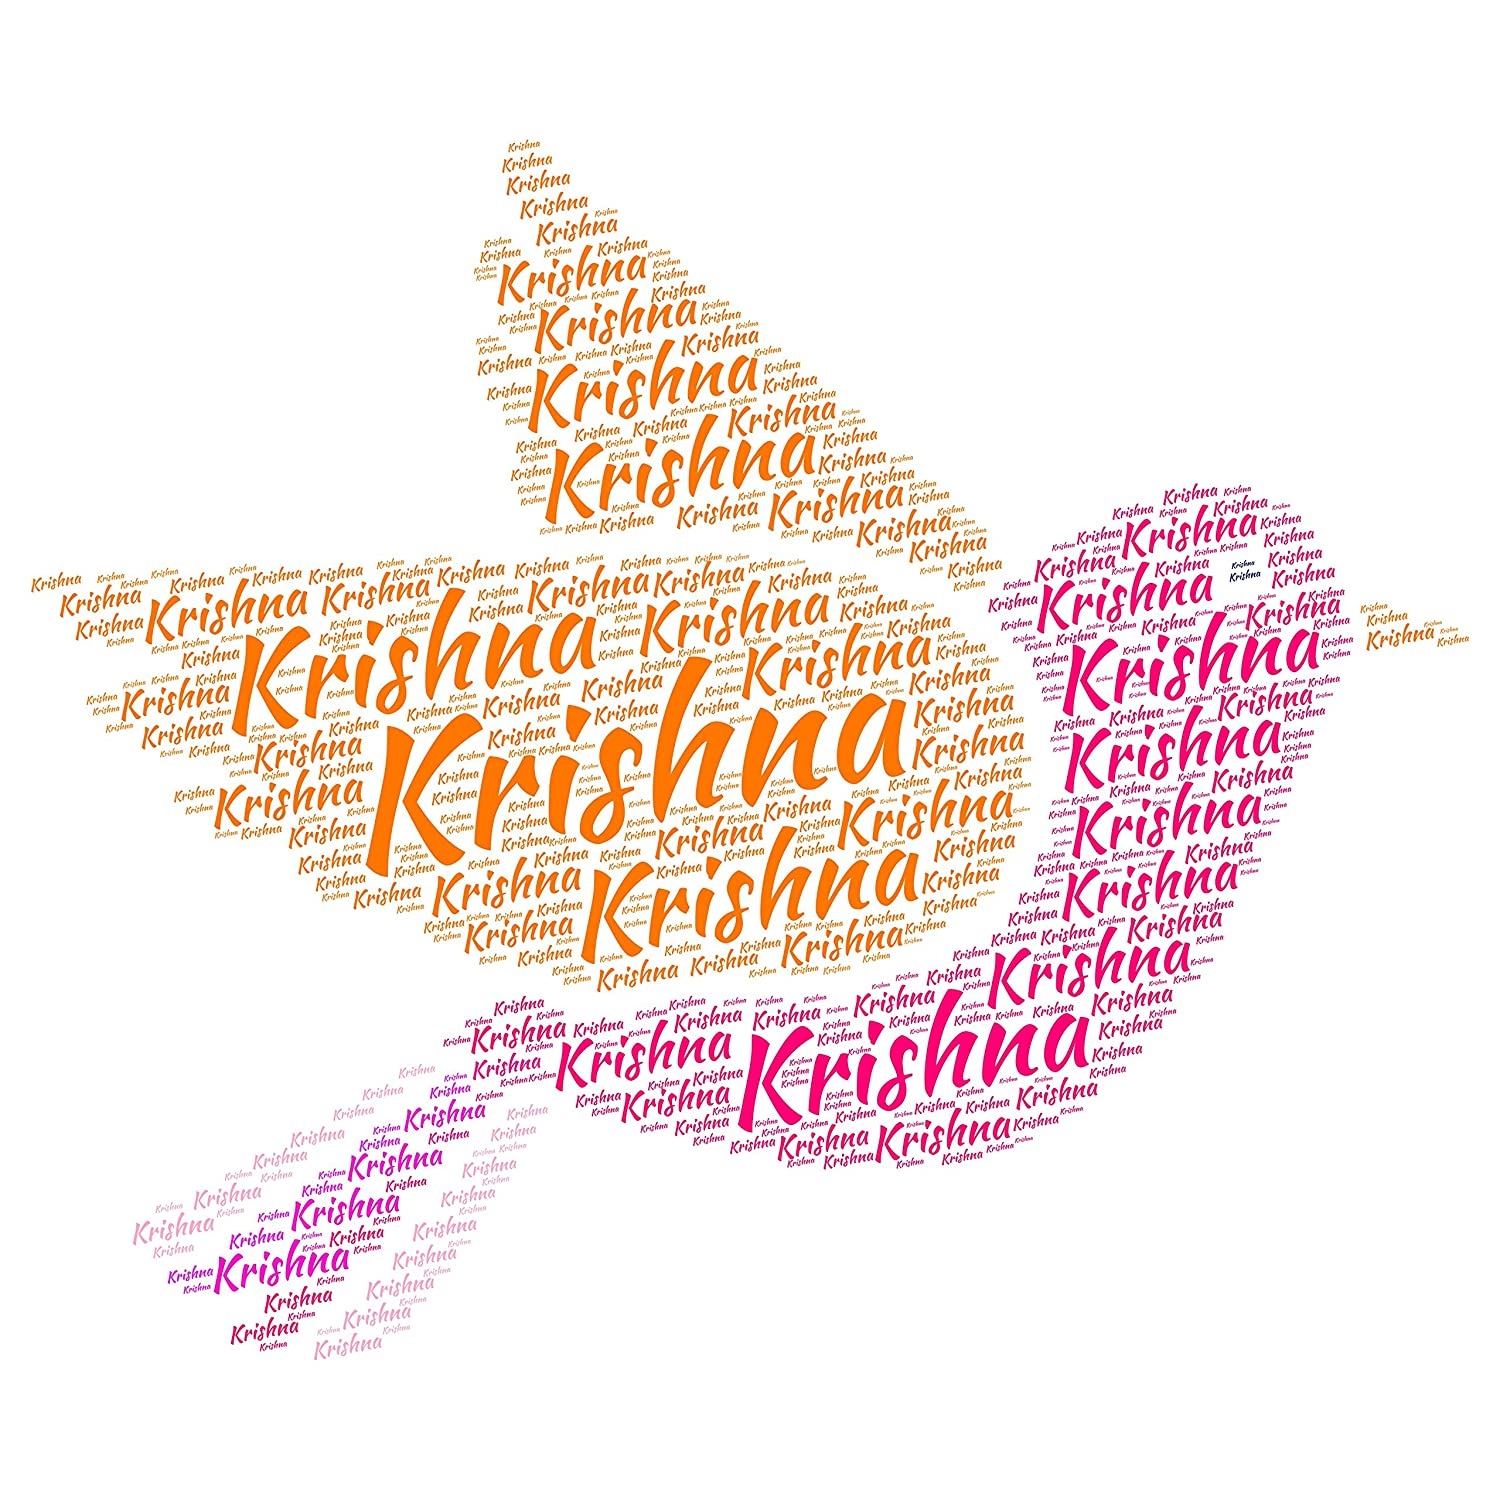 Buy destudio krishna name sticker pvc vinyl film 60 cm x 60 cm x 0 01 online at low prices in india amazon in